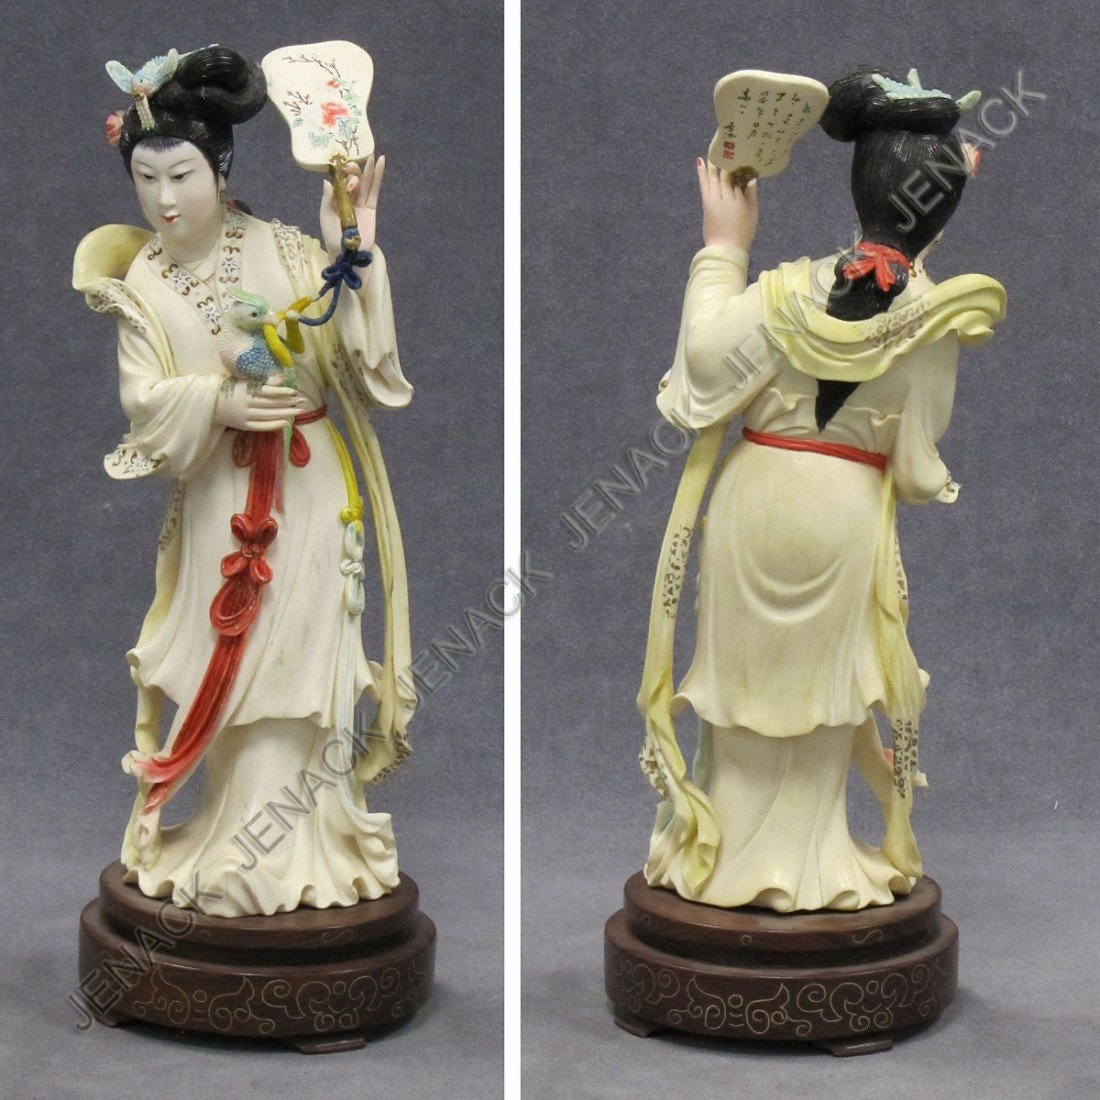 94: CHINESE CARVED/STAINED IVORY FIGURE OF A WOMAN